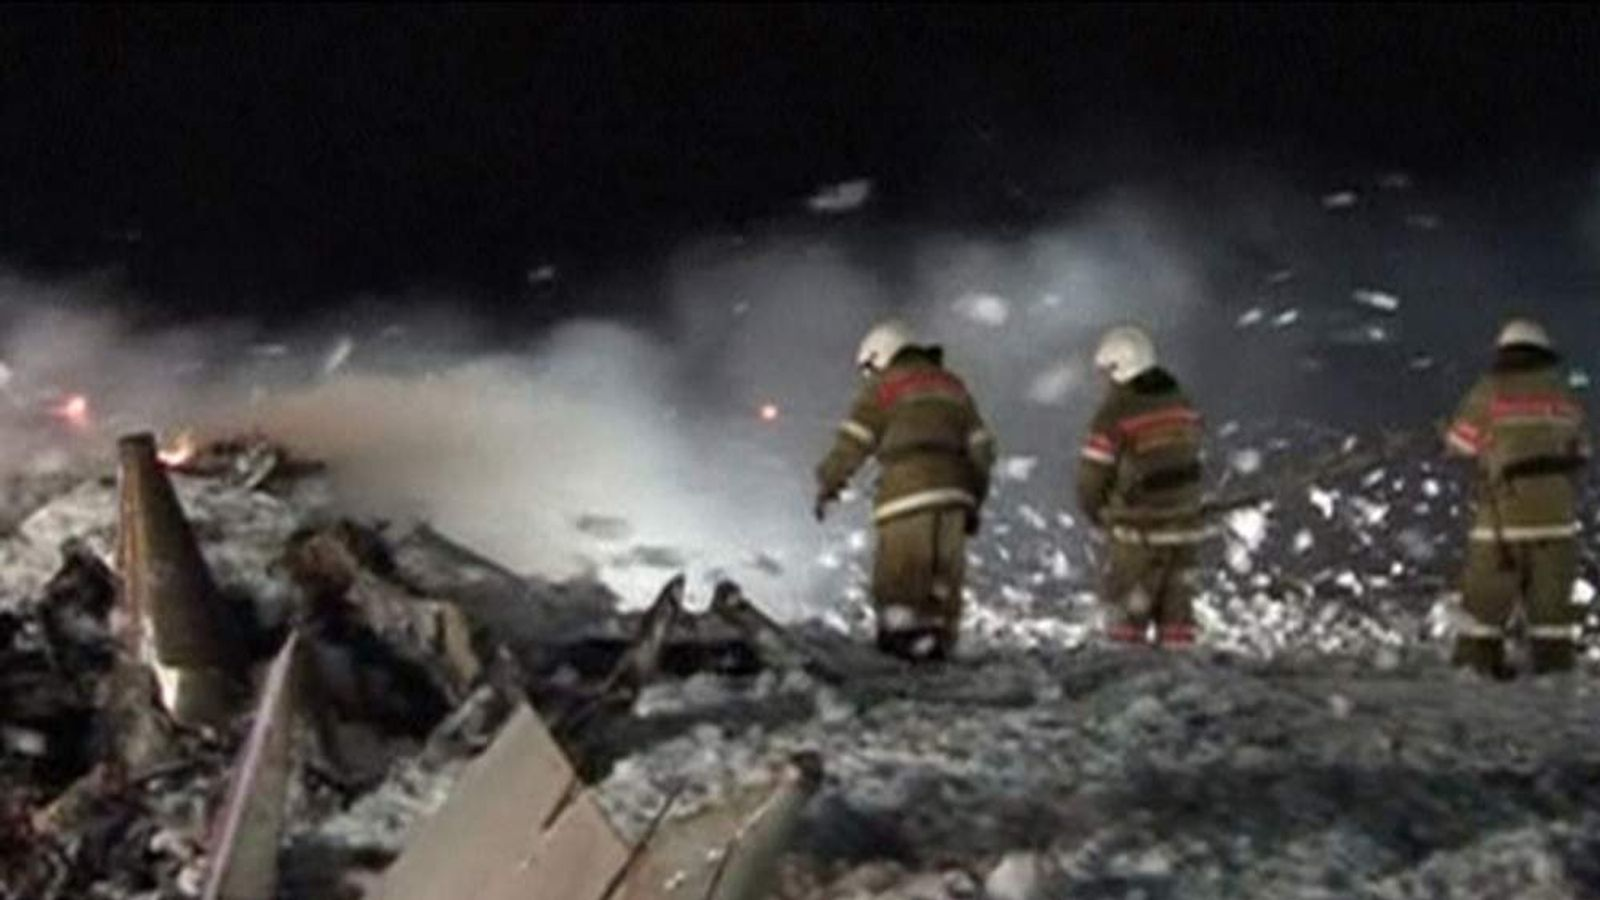 Firefighters out out the blaze at the scene of a plane crash in Russia